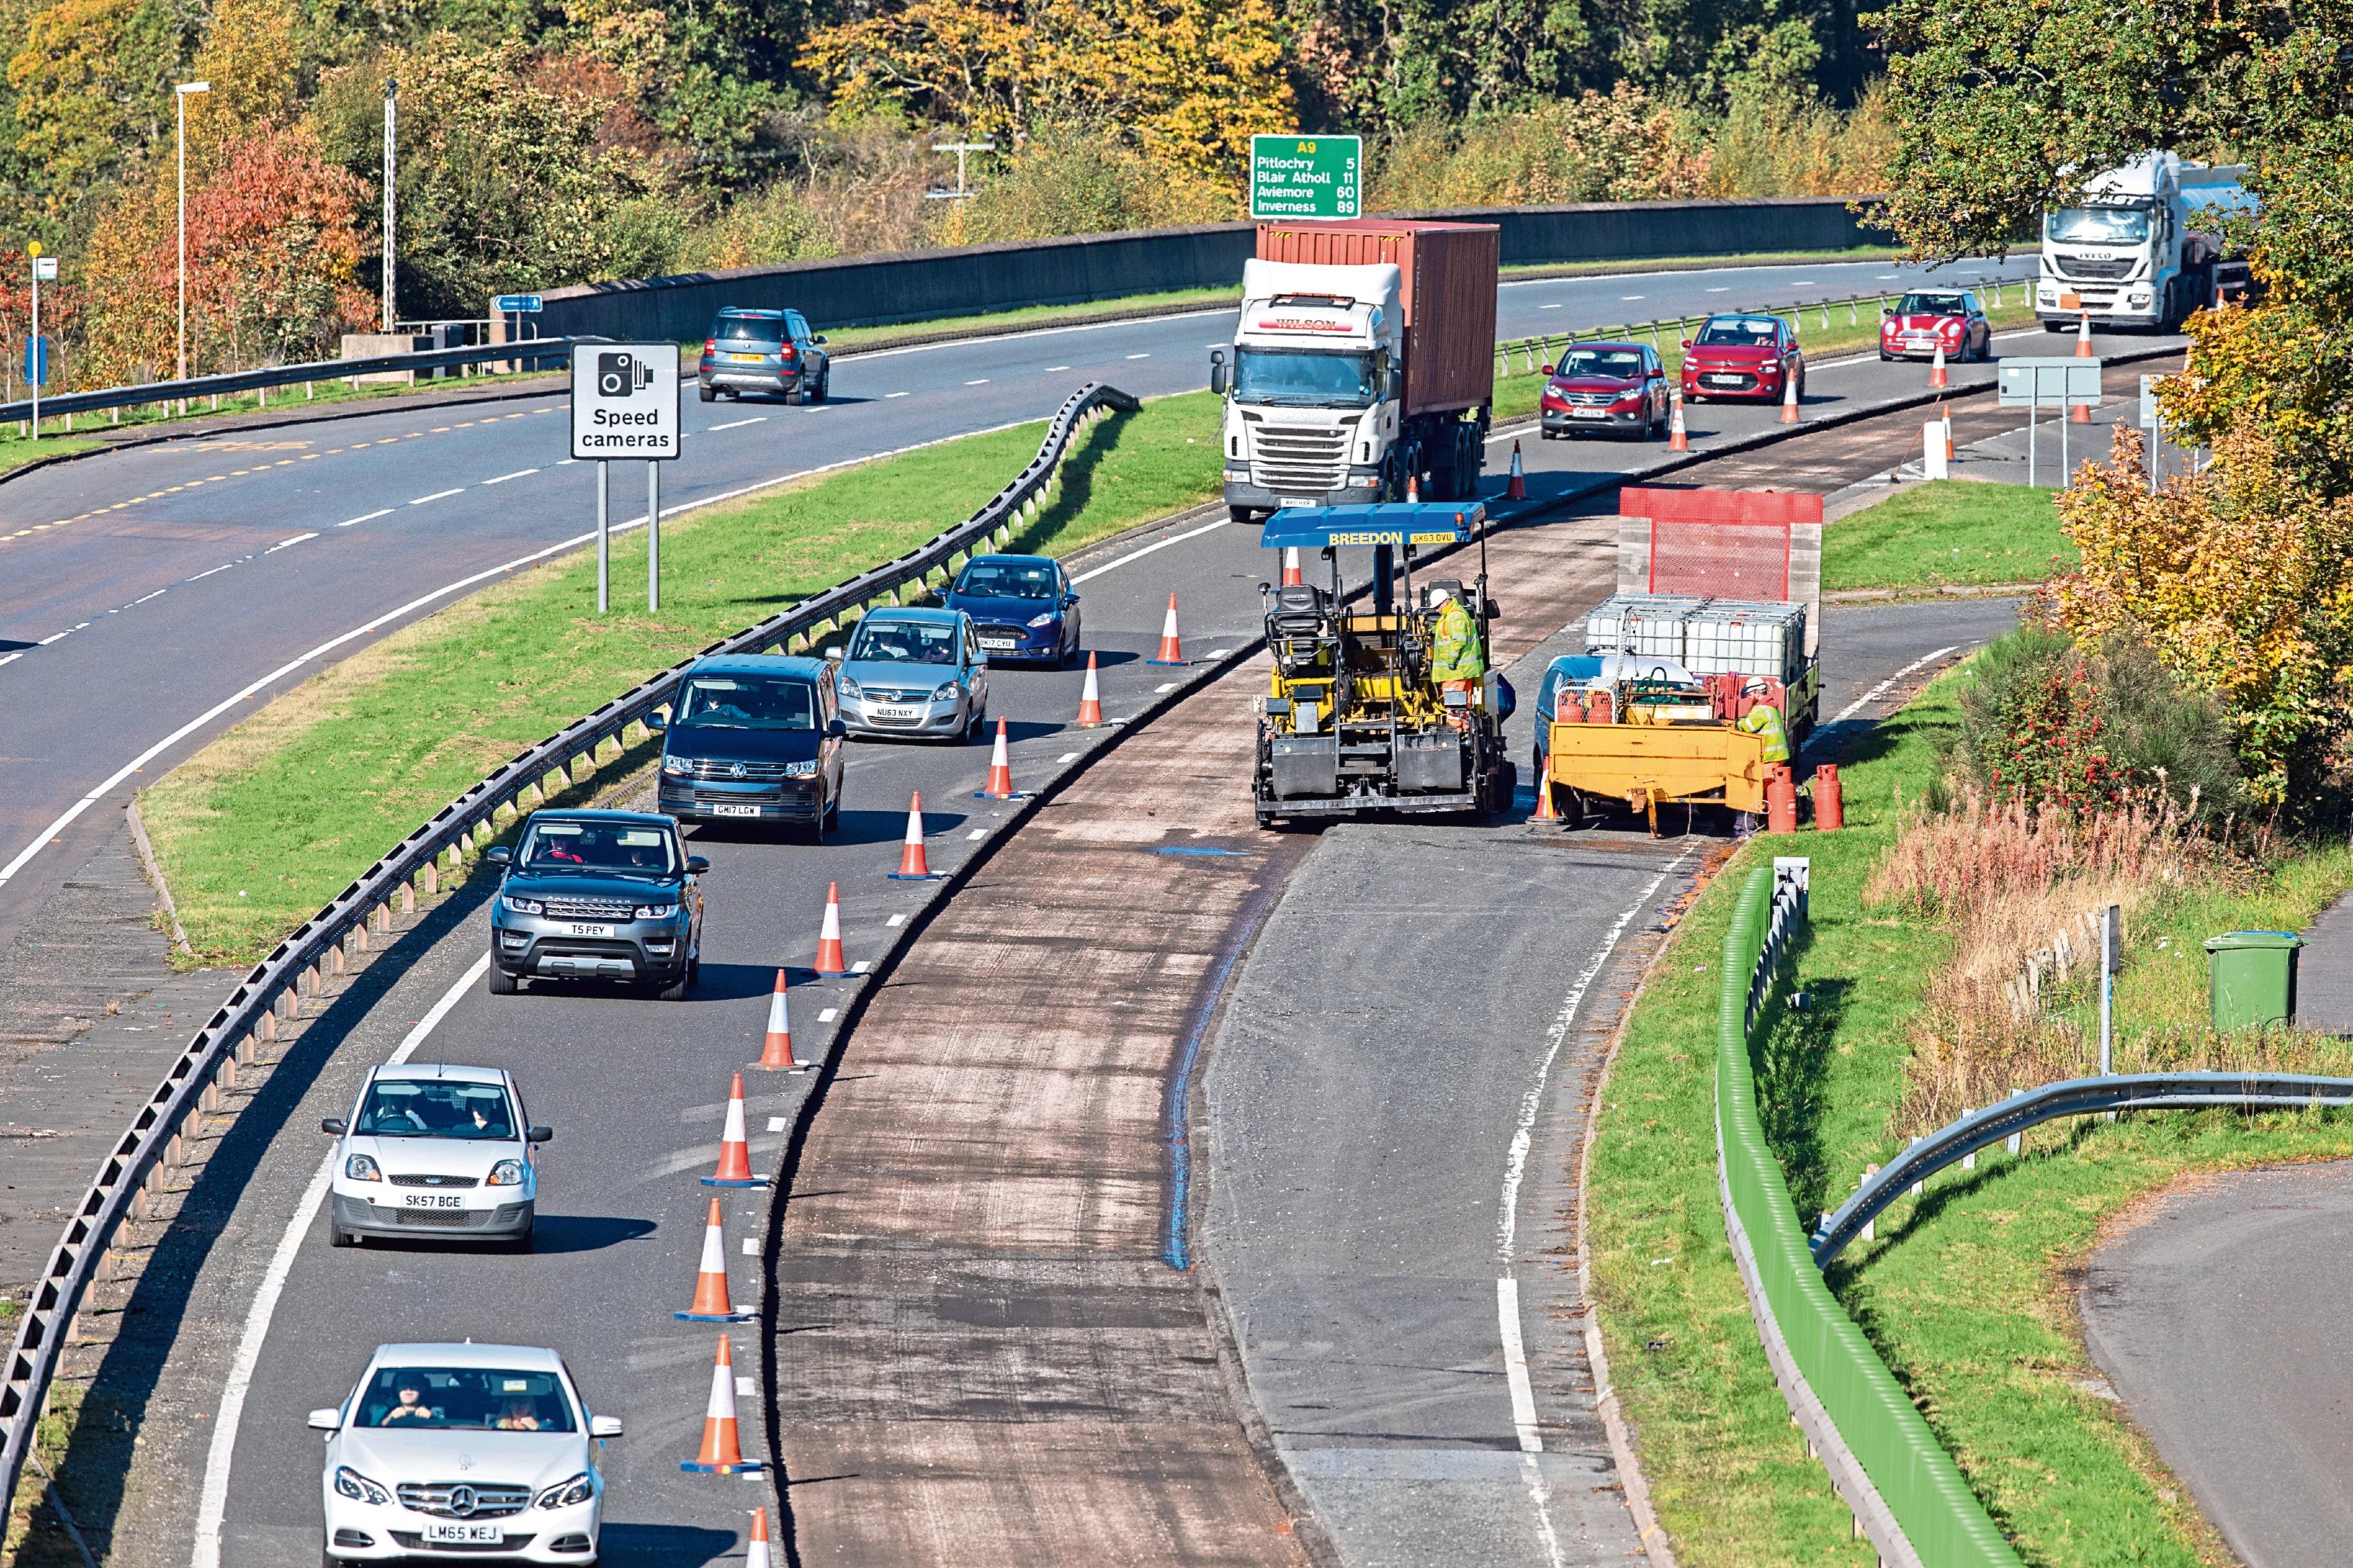 A week-long campaign calls on road users to be patient and respect the workforce who carry out road maintenance.